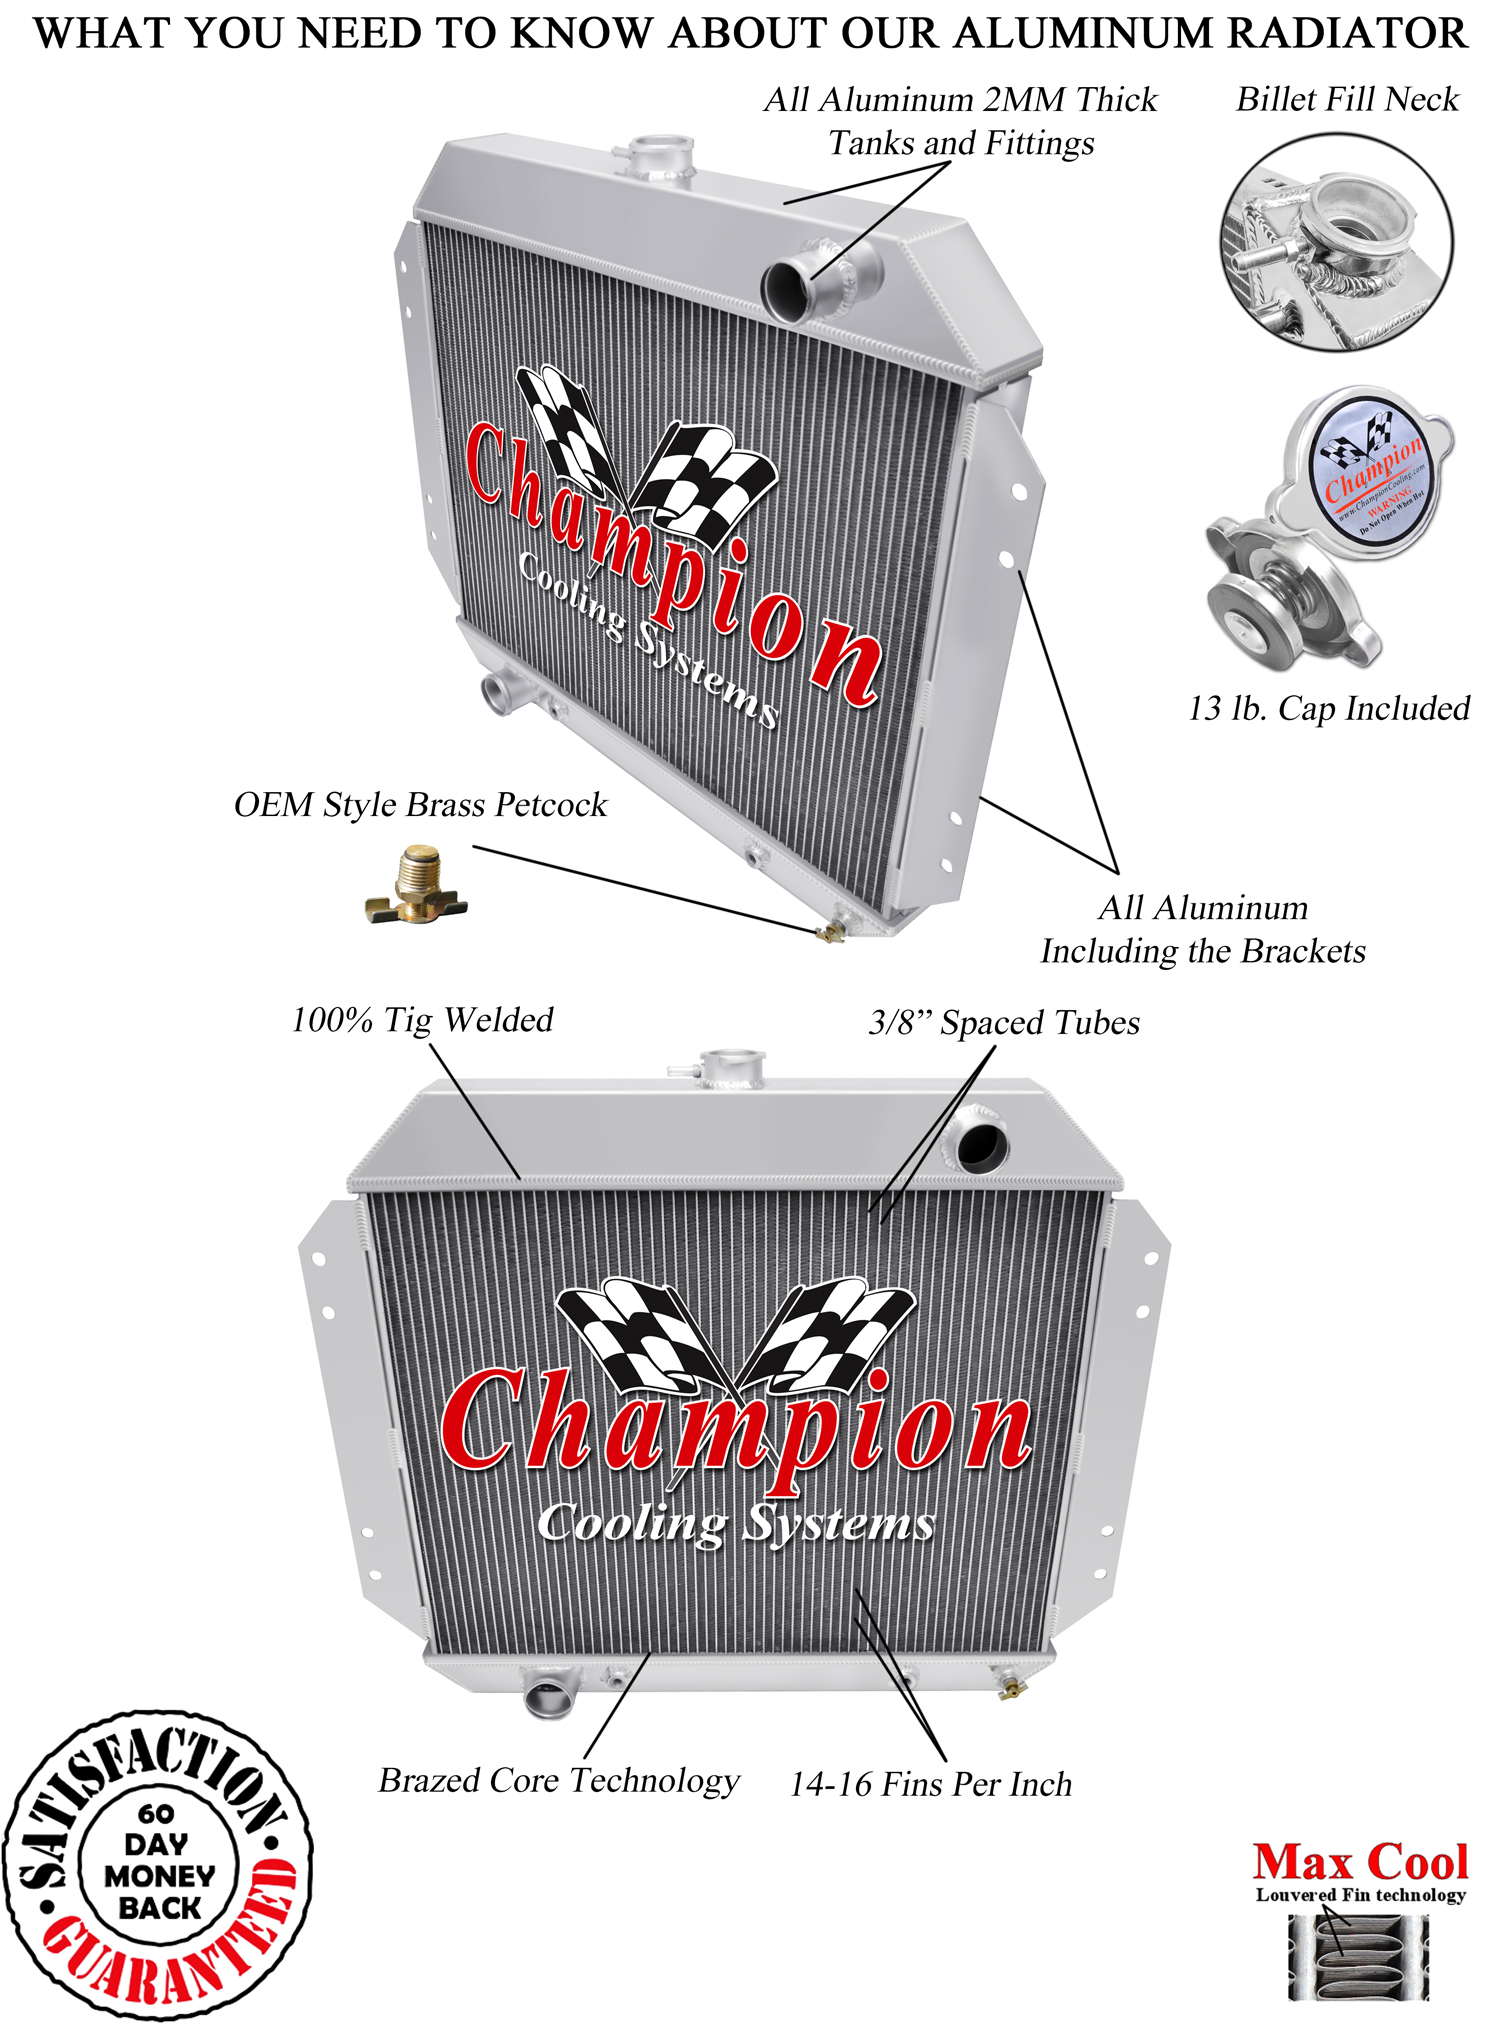 https://www.championcooling.com/photos/Photos%20White/Without%20Fans/444/444_d_w.jpg